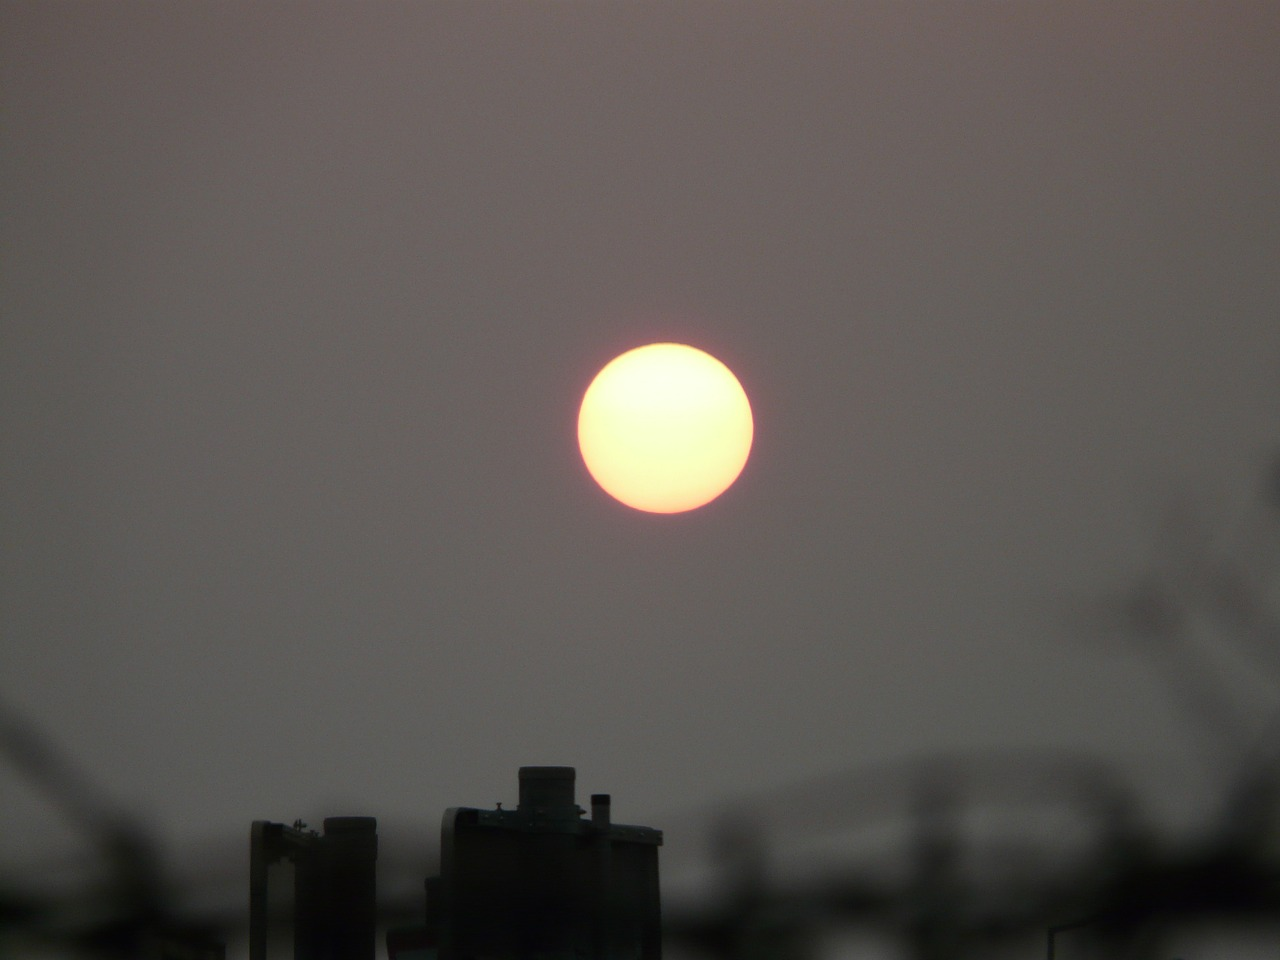 sun pale gloomy free photo